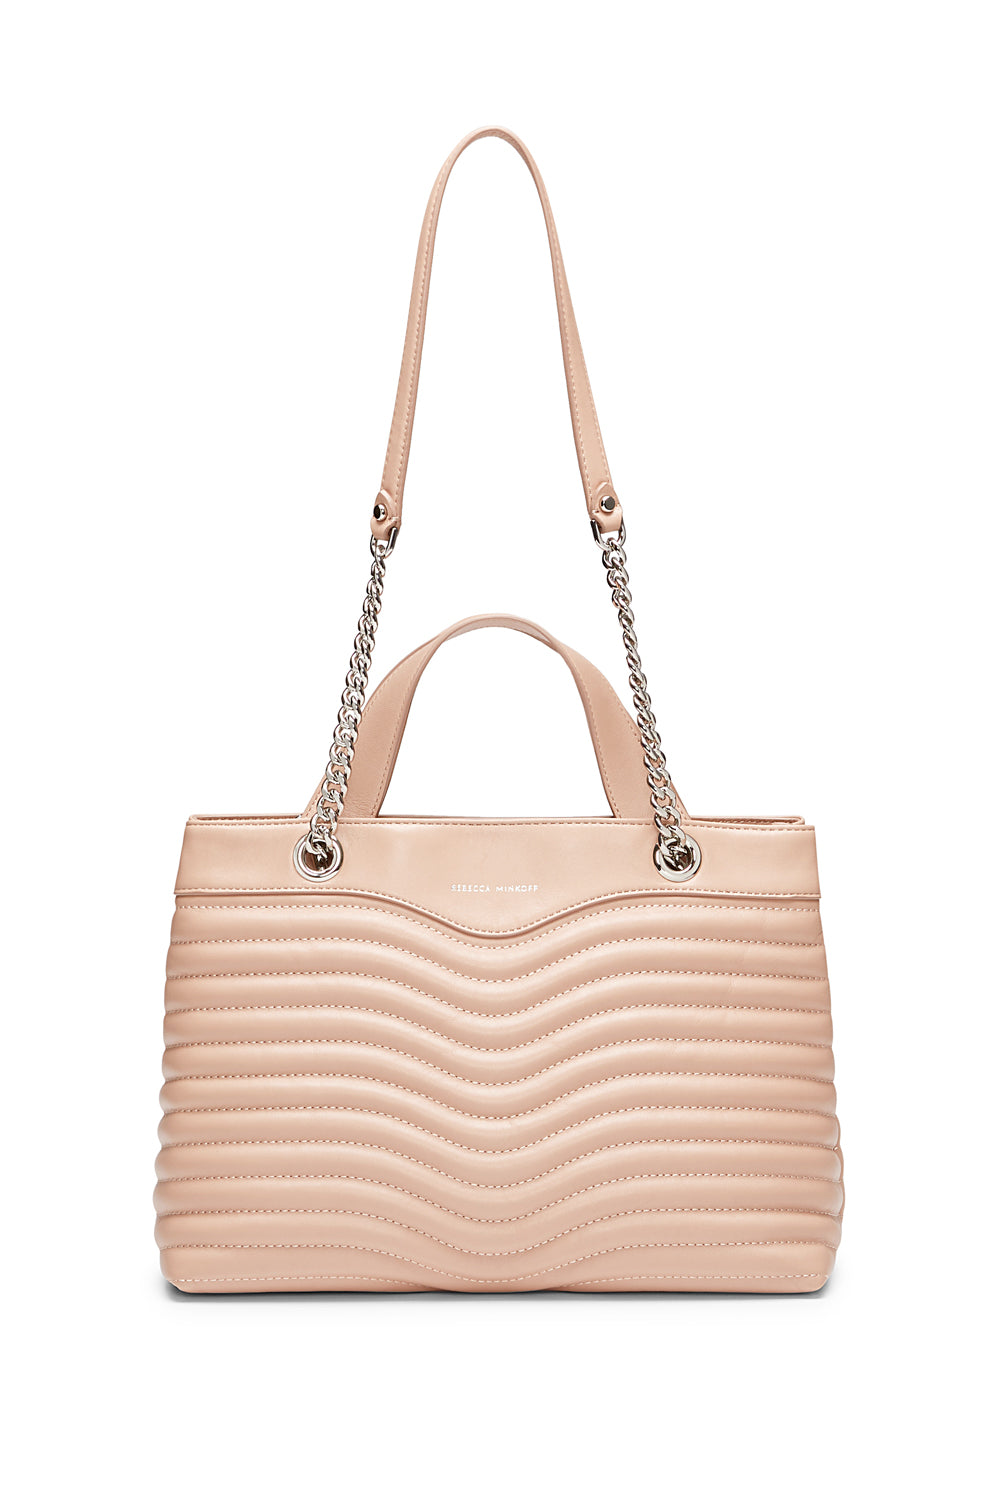 Rebecca-Minkoff M.A.B. Quilted Satchel